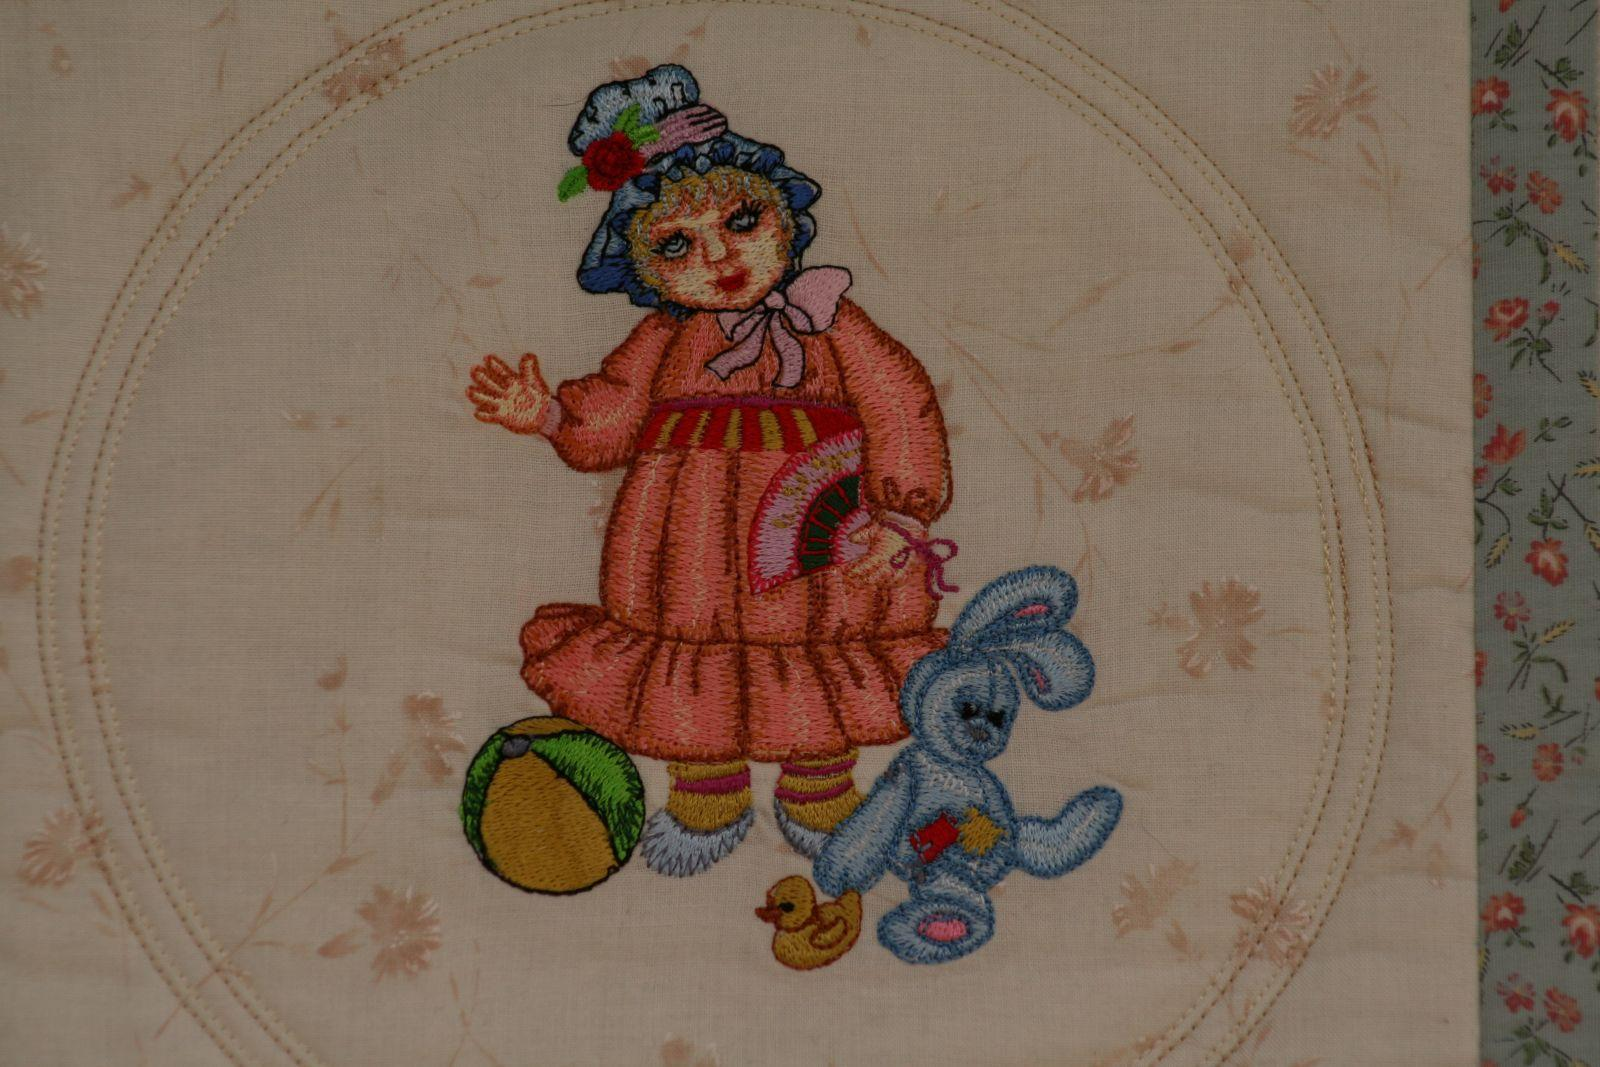 Doll with bunny embroidery design